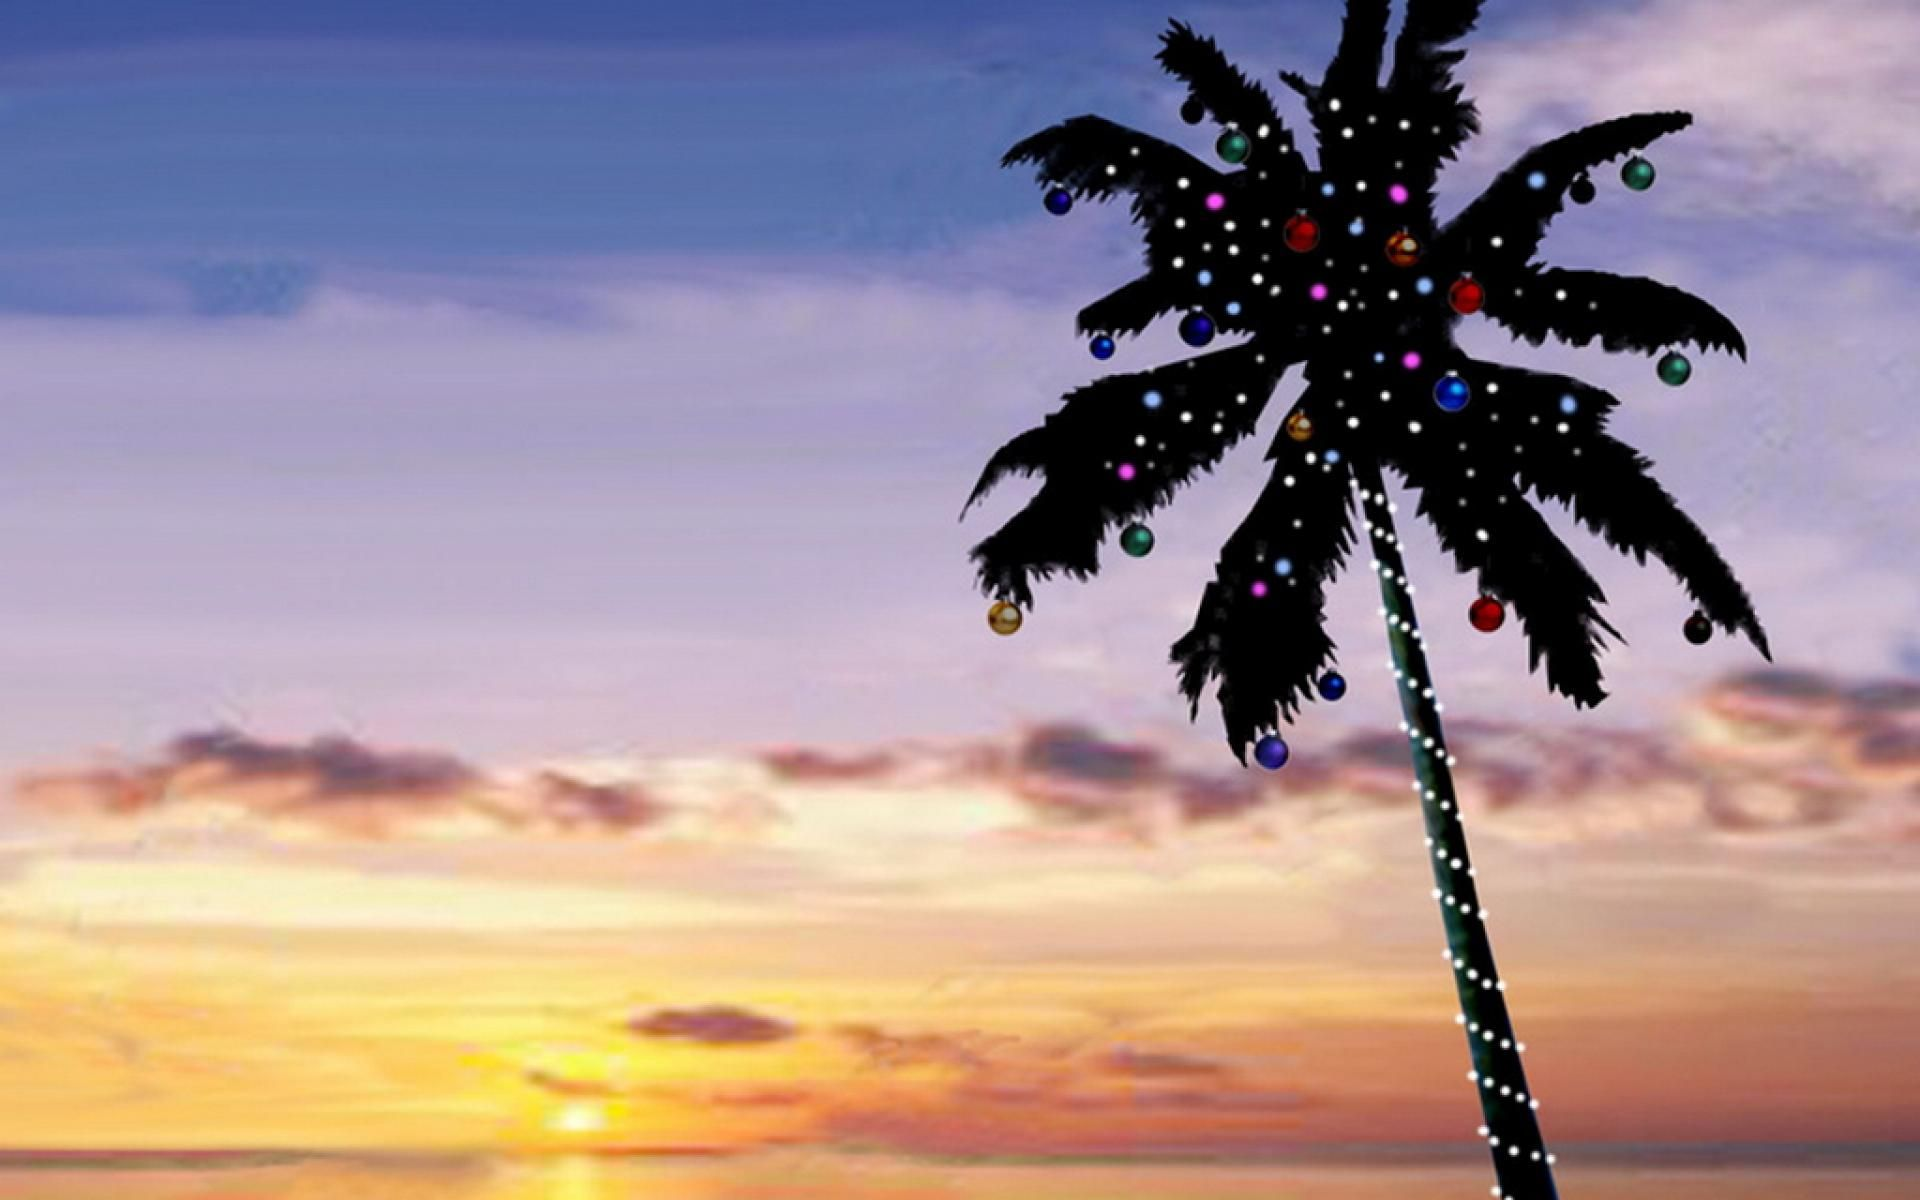 Tropical Christmas Themes You Are Viewing The Christmas Wallpaper Named Tropical Christmas Beach Christmas Trees Tropical Christmas Christmas Tree Wallpaper